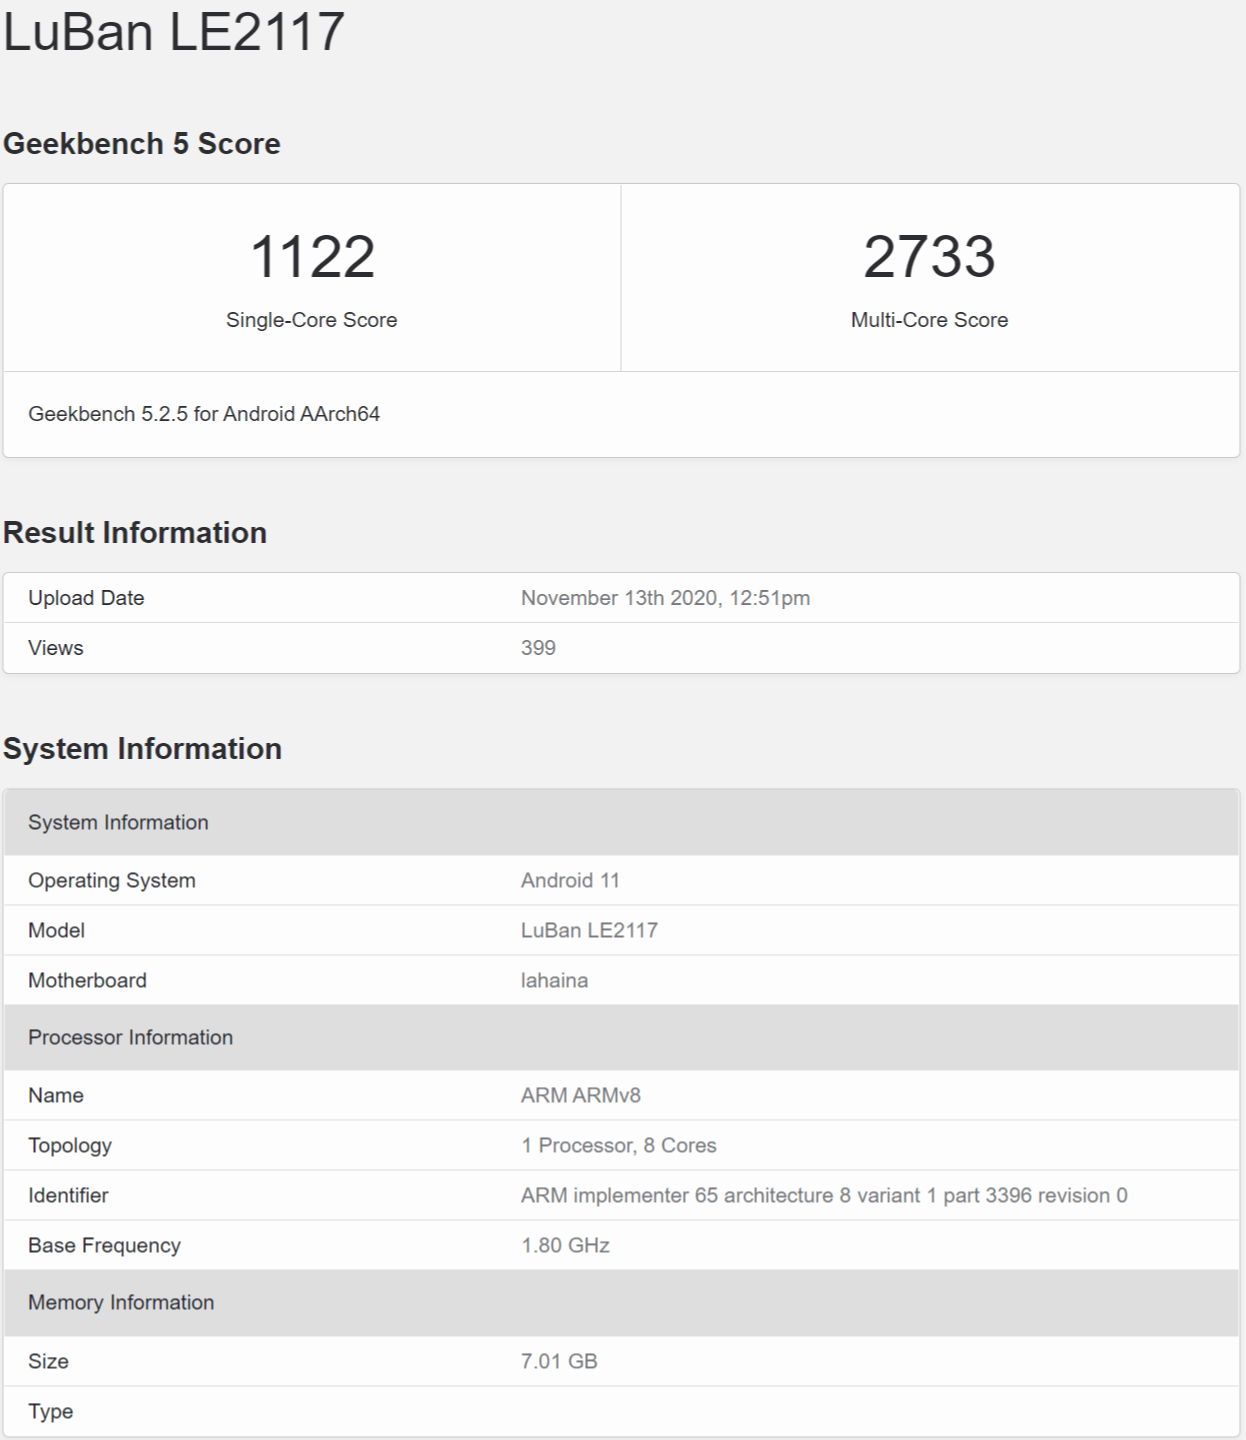 LuBan LE2117 - Geekbench Browser